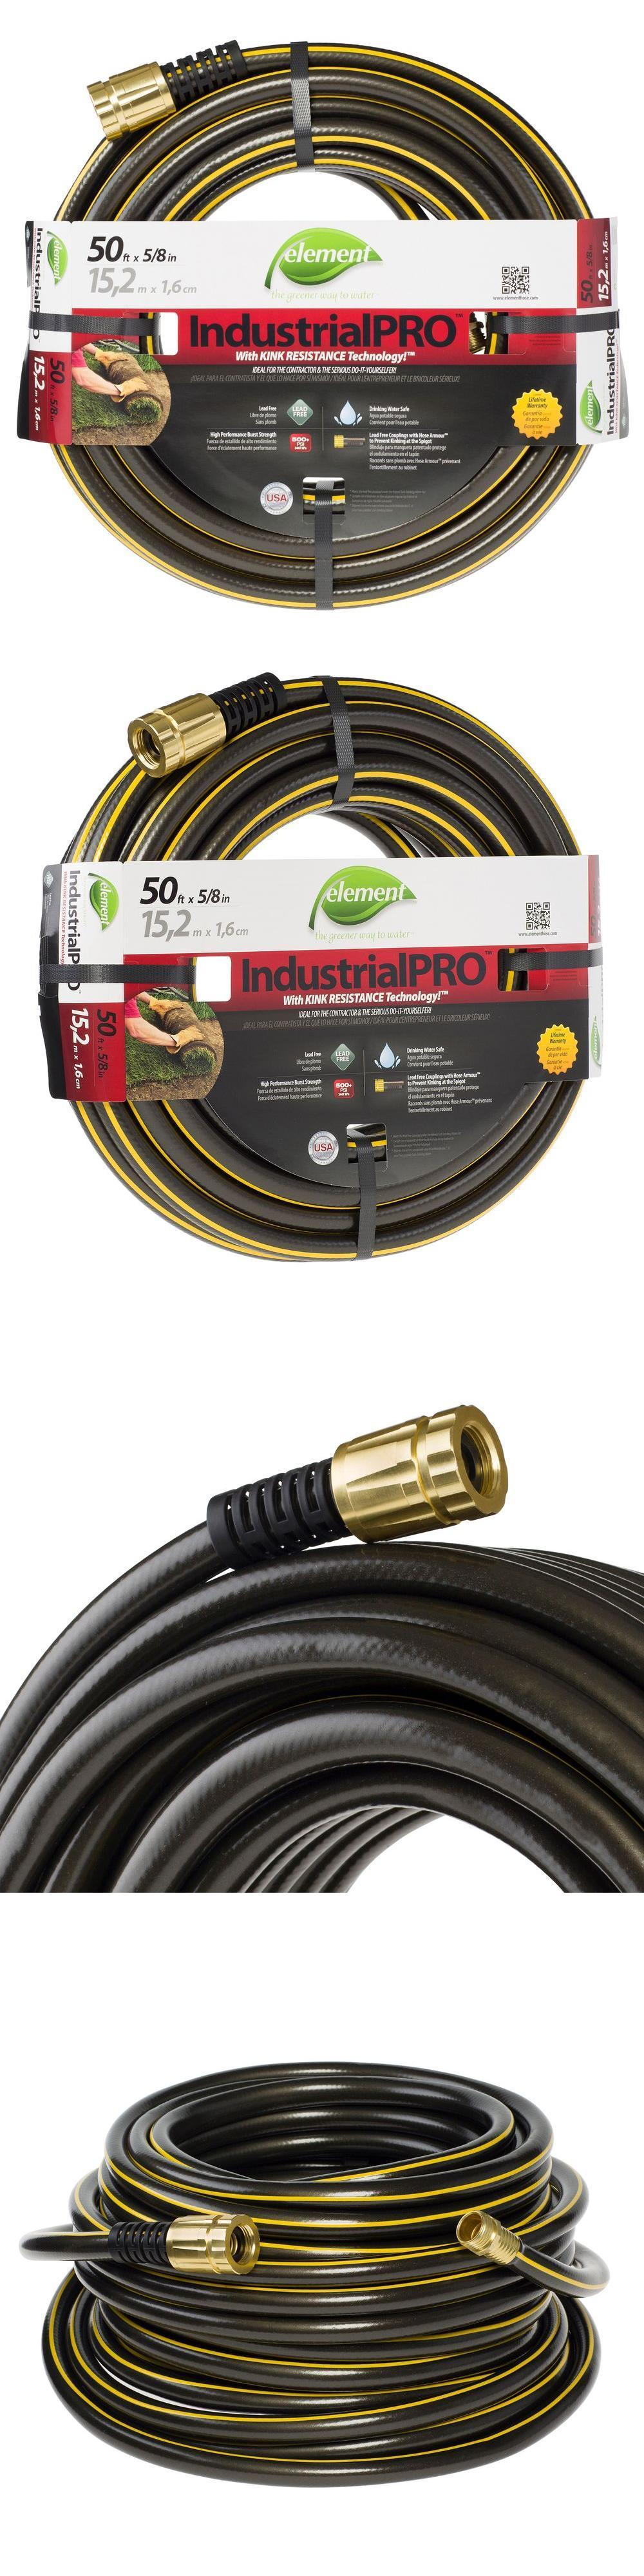 Hoses 151604: Lead Free Garden Hose Drinking Water Safe 5 8 In. Dia X